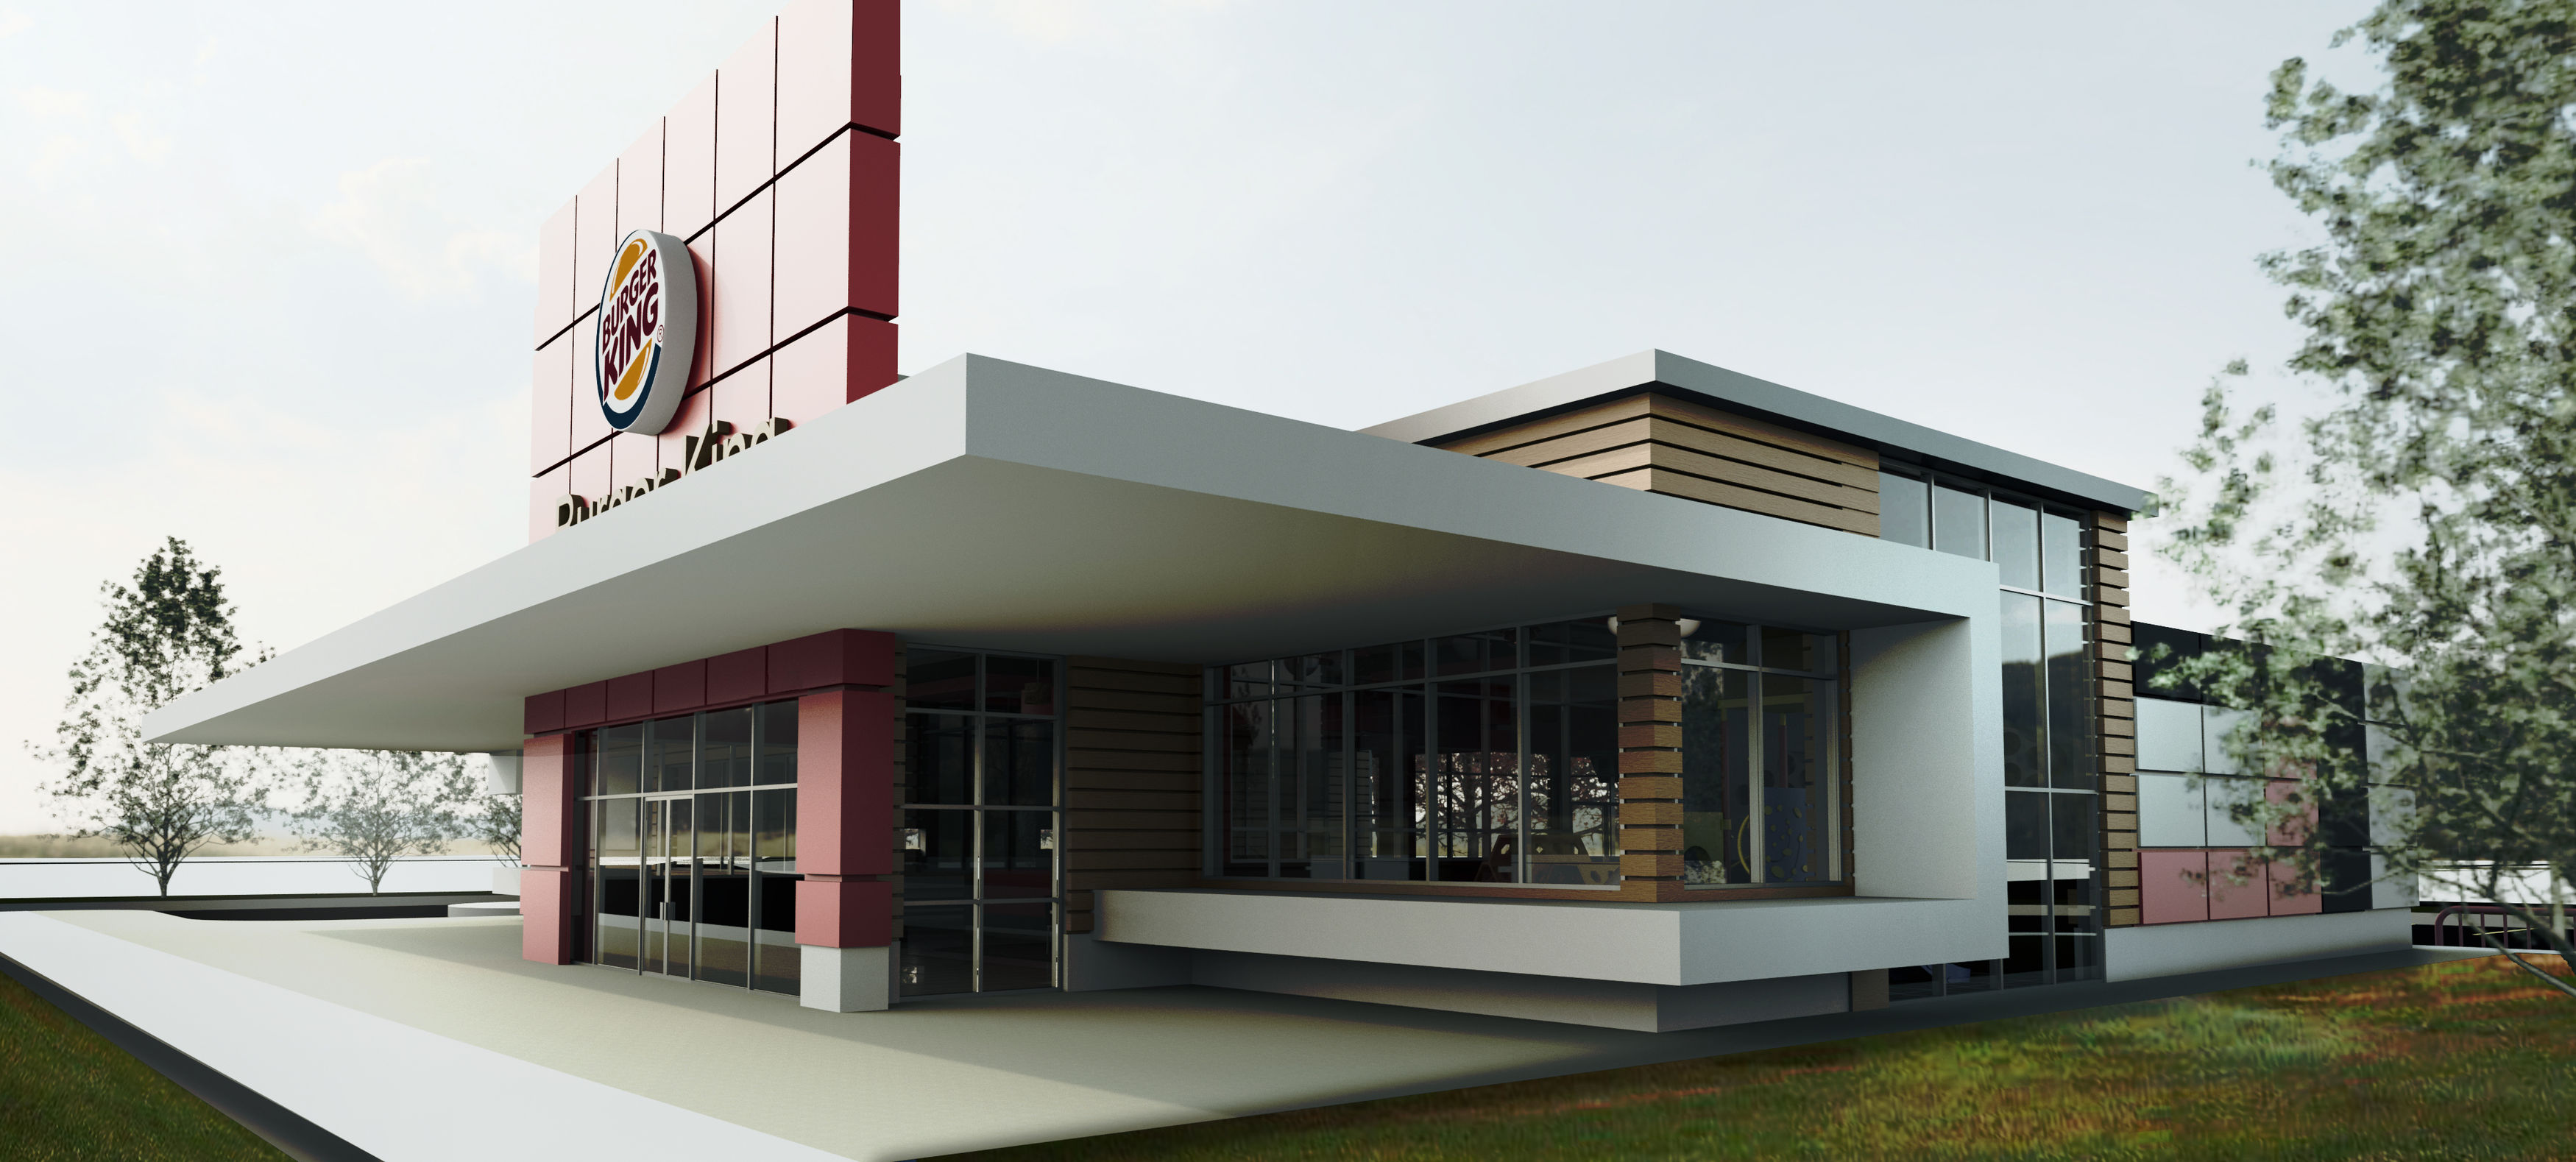 Fast Food Project Autodesk Online Gallery